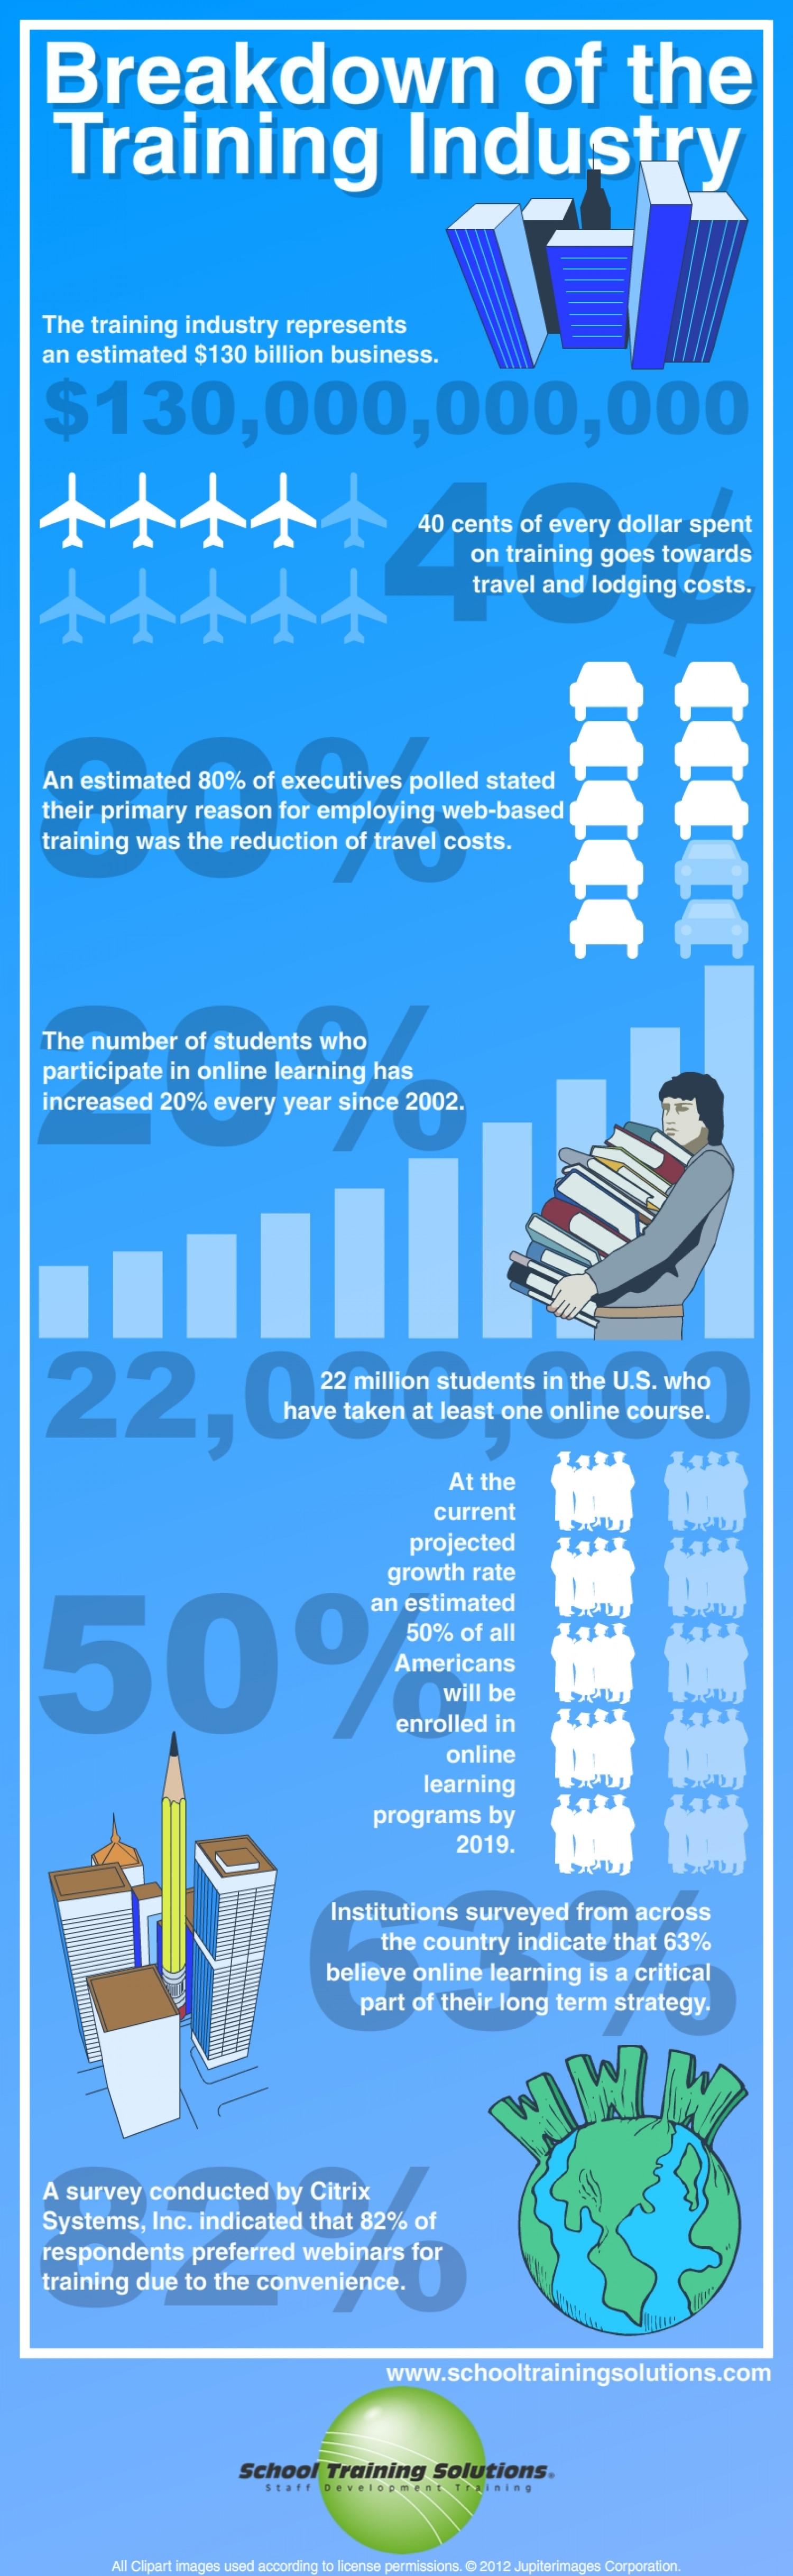 Breakdown of the Training Industry Infographic